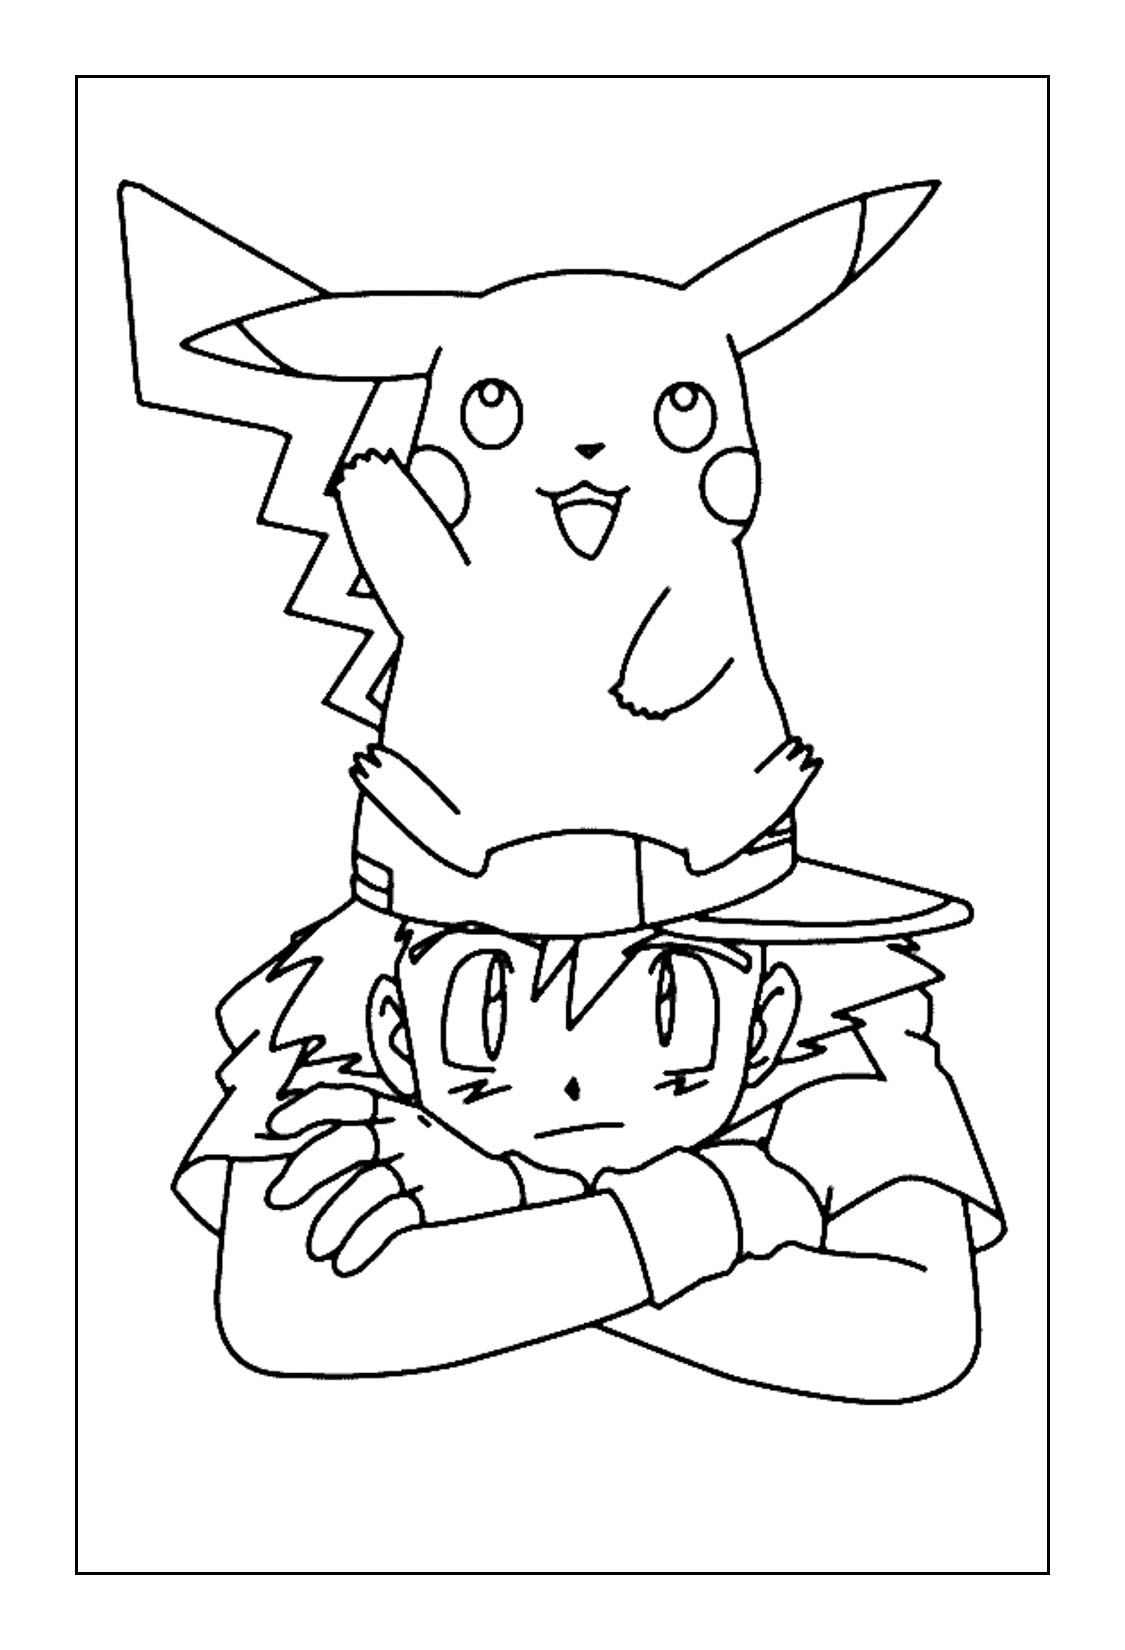 Ash and Pikachu Coloring Pages | Pikachu coloring page ...